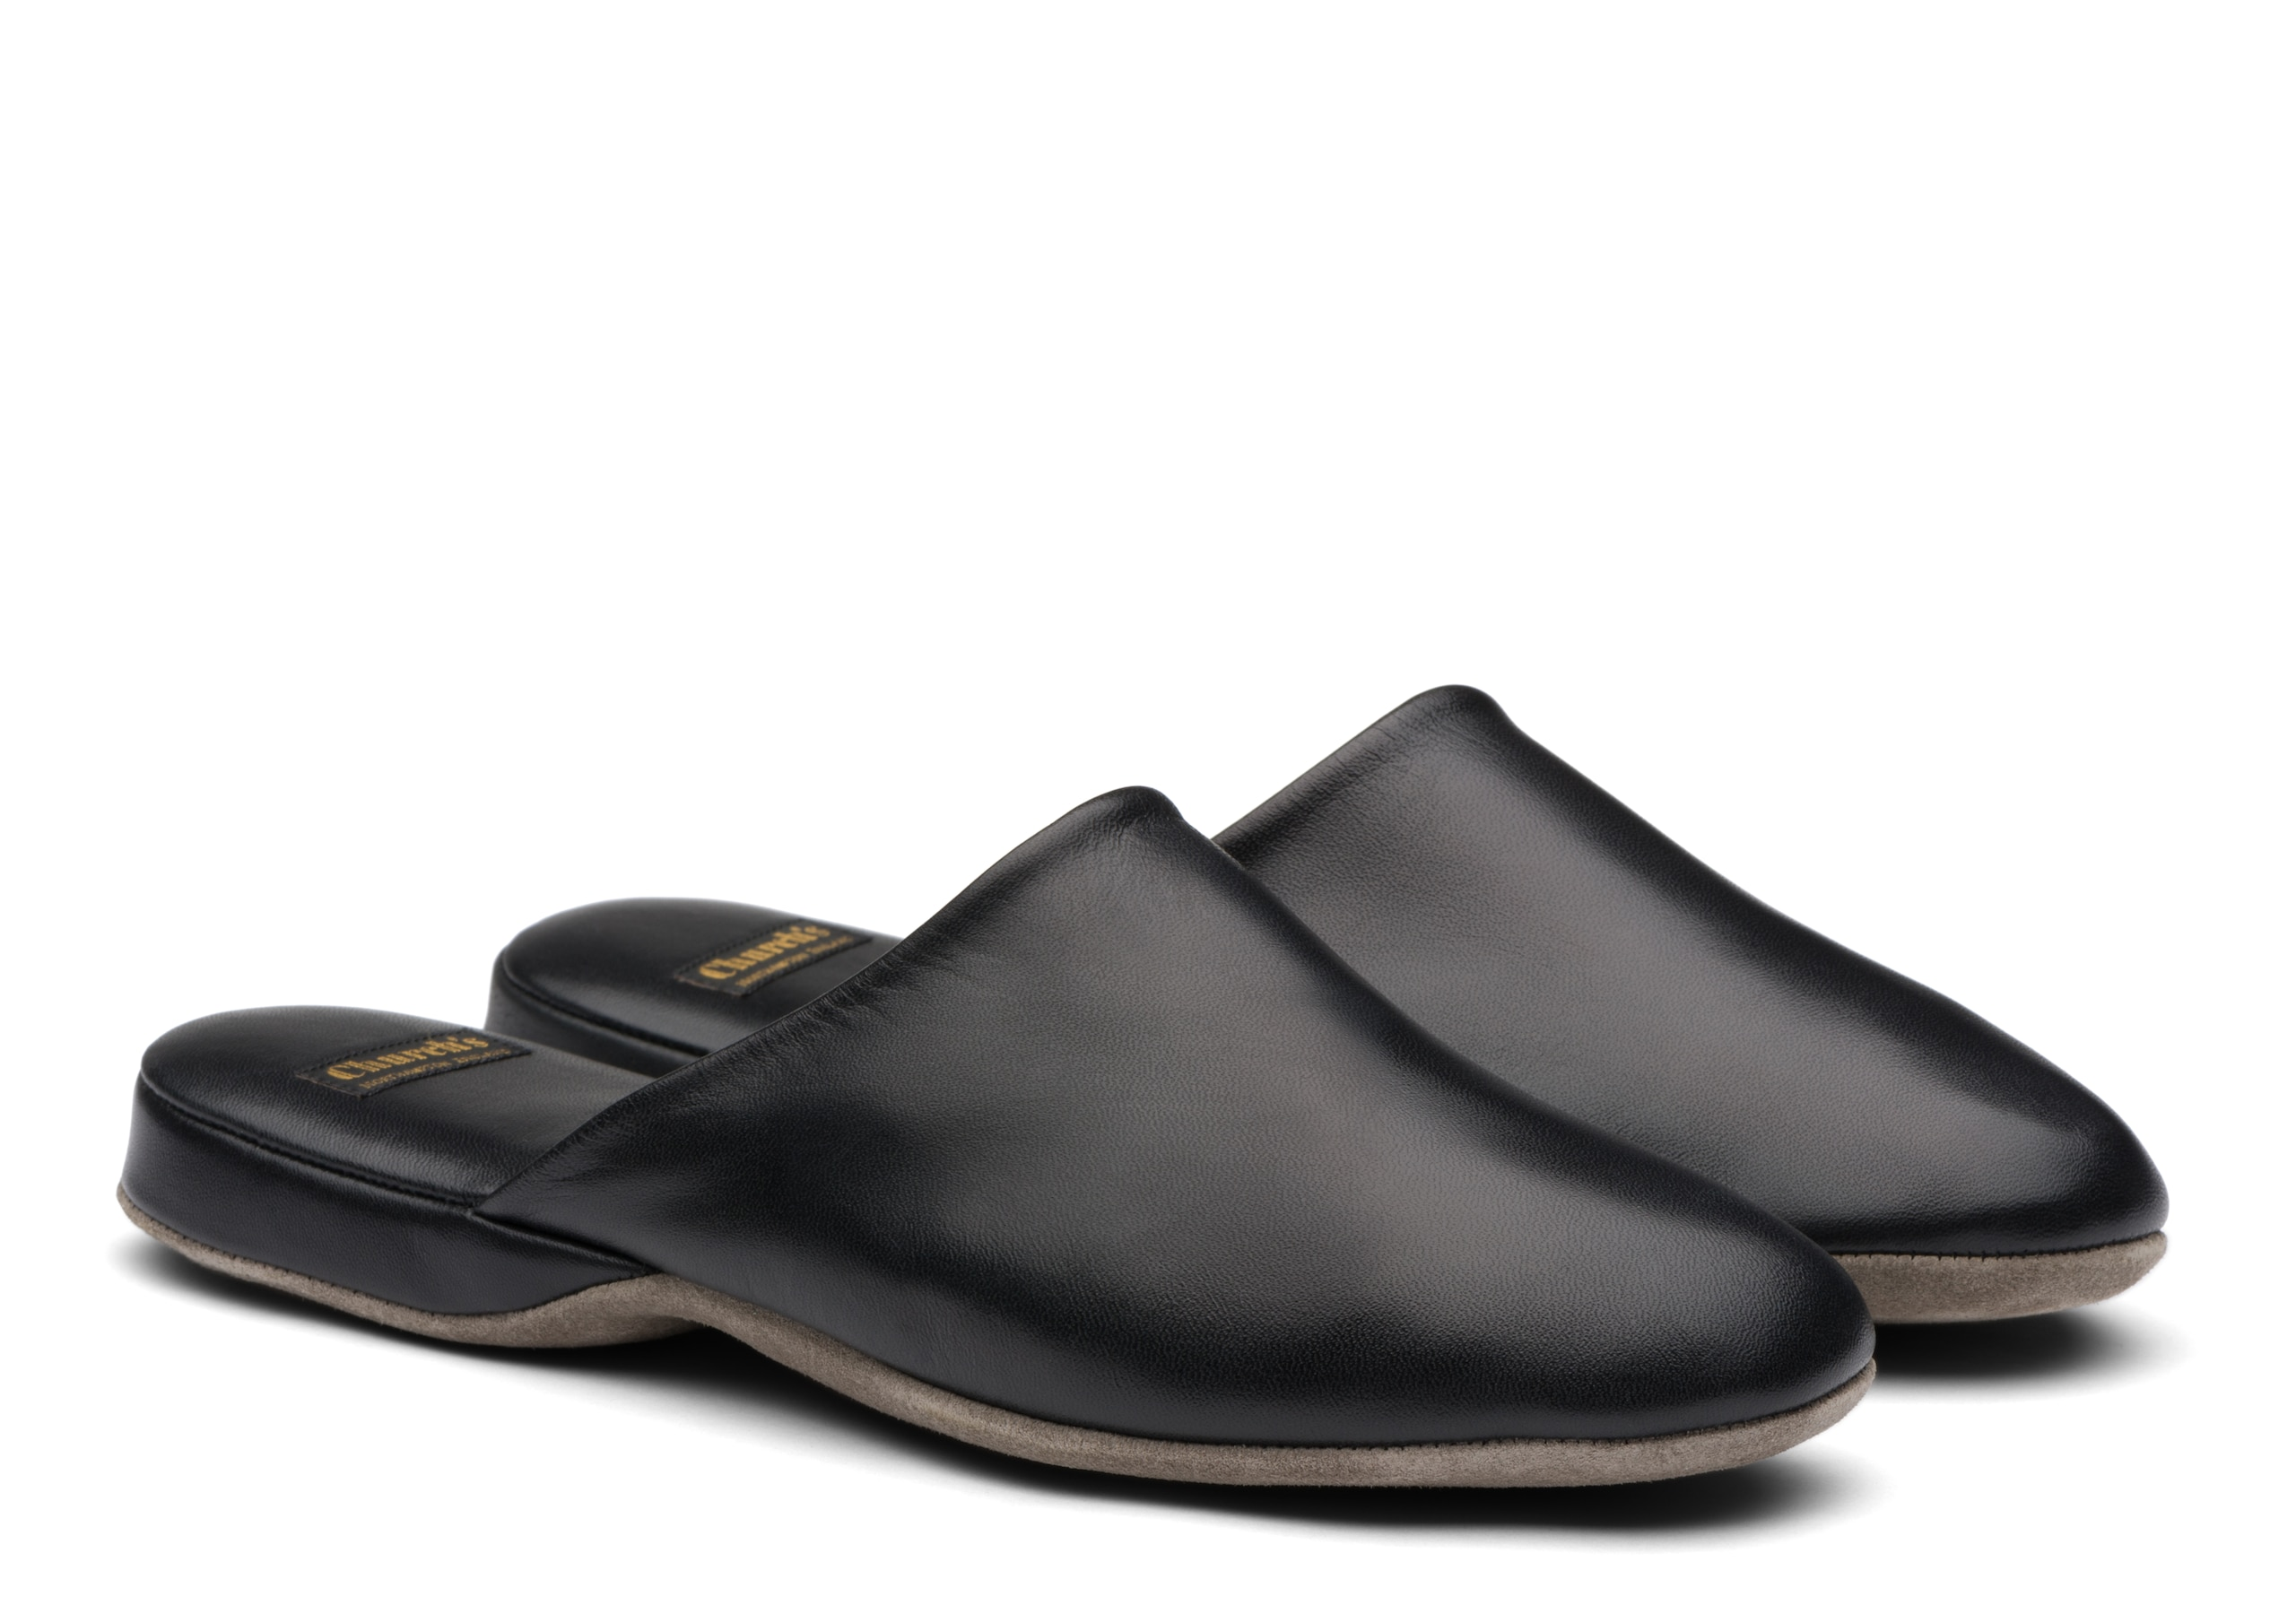 Arran 03 Church's Nappa Leather Slipper Black